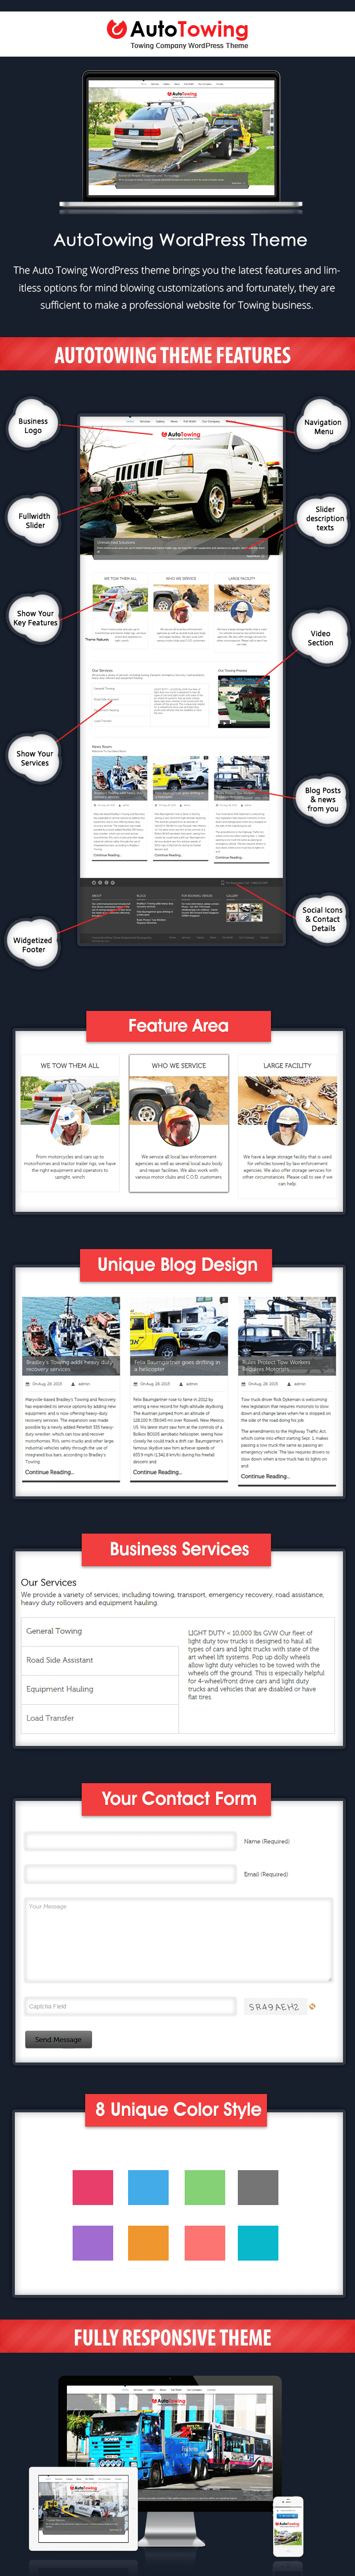 WordPress theme for auto towing and hauling business